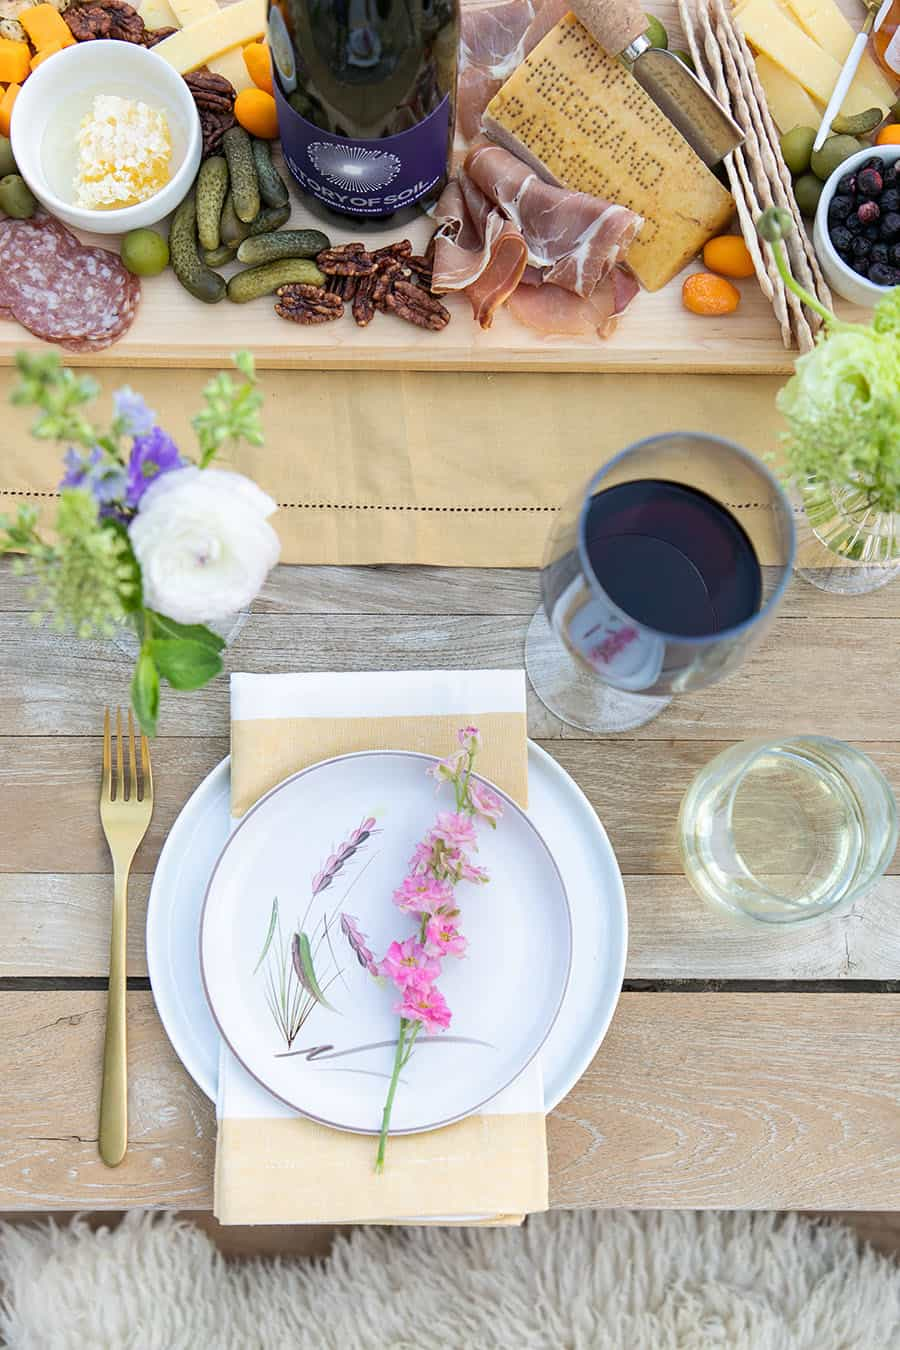 table setting with wine glass and yellow table runner.